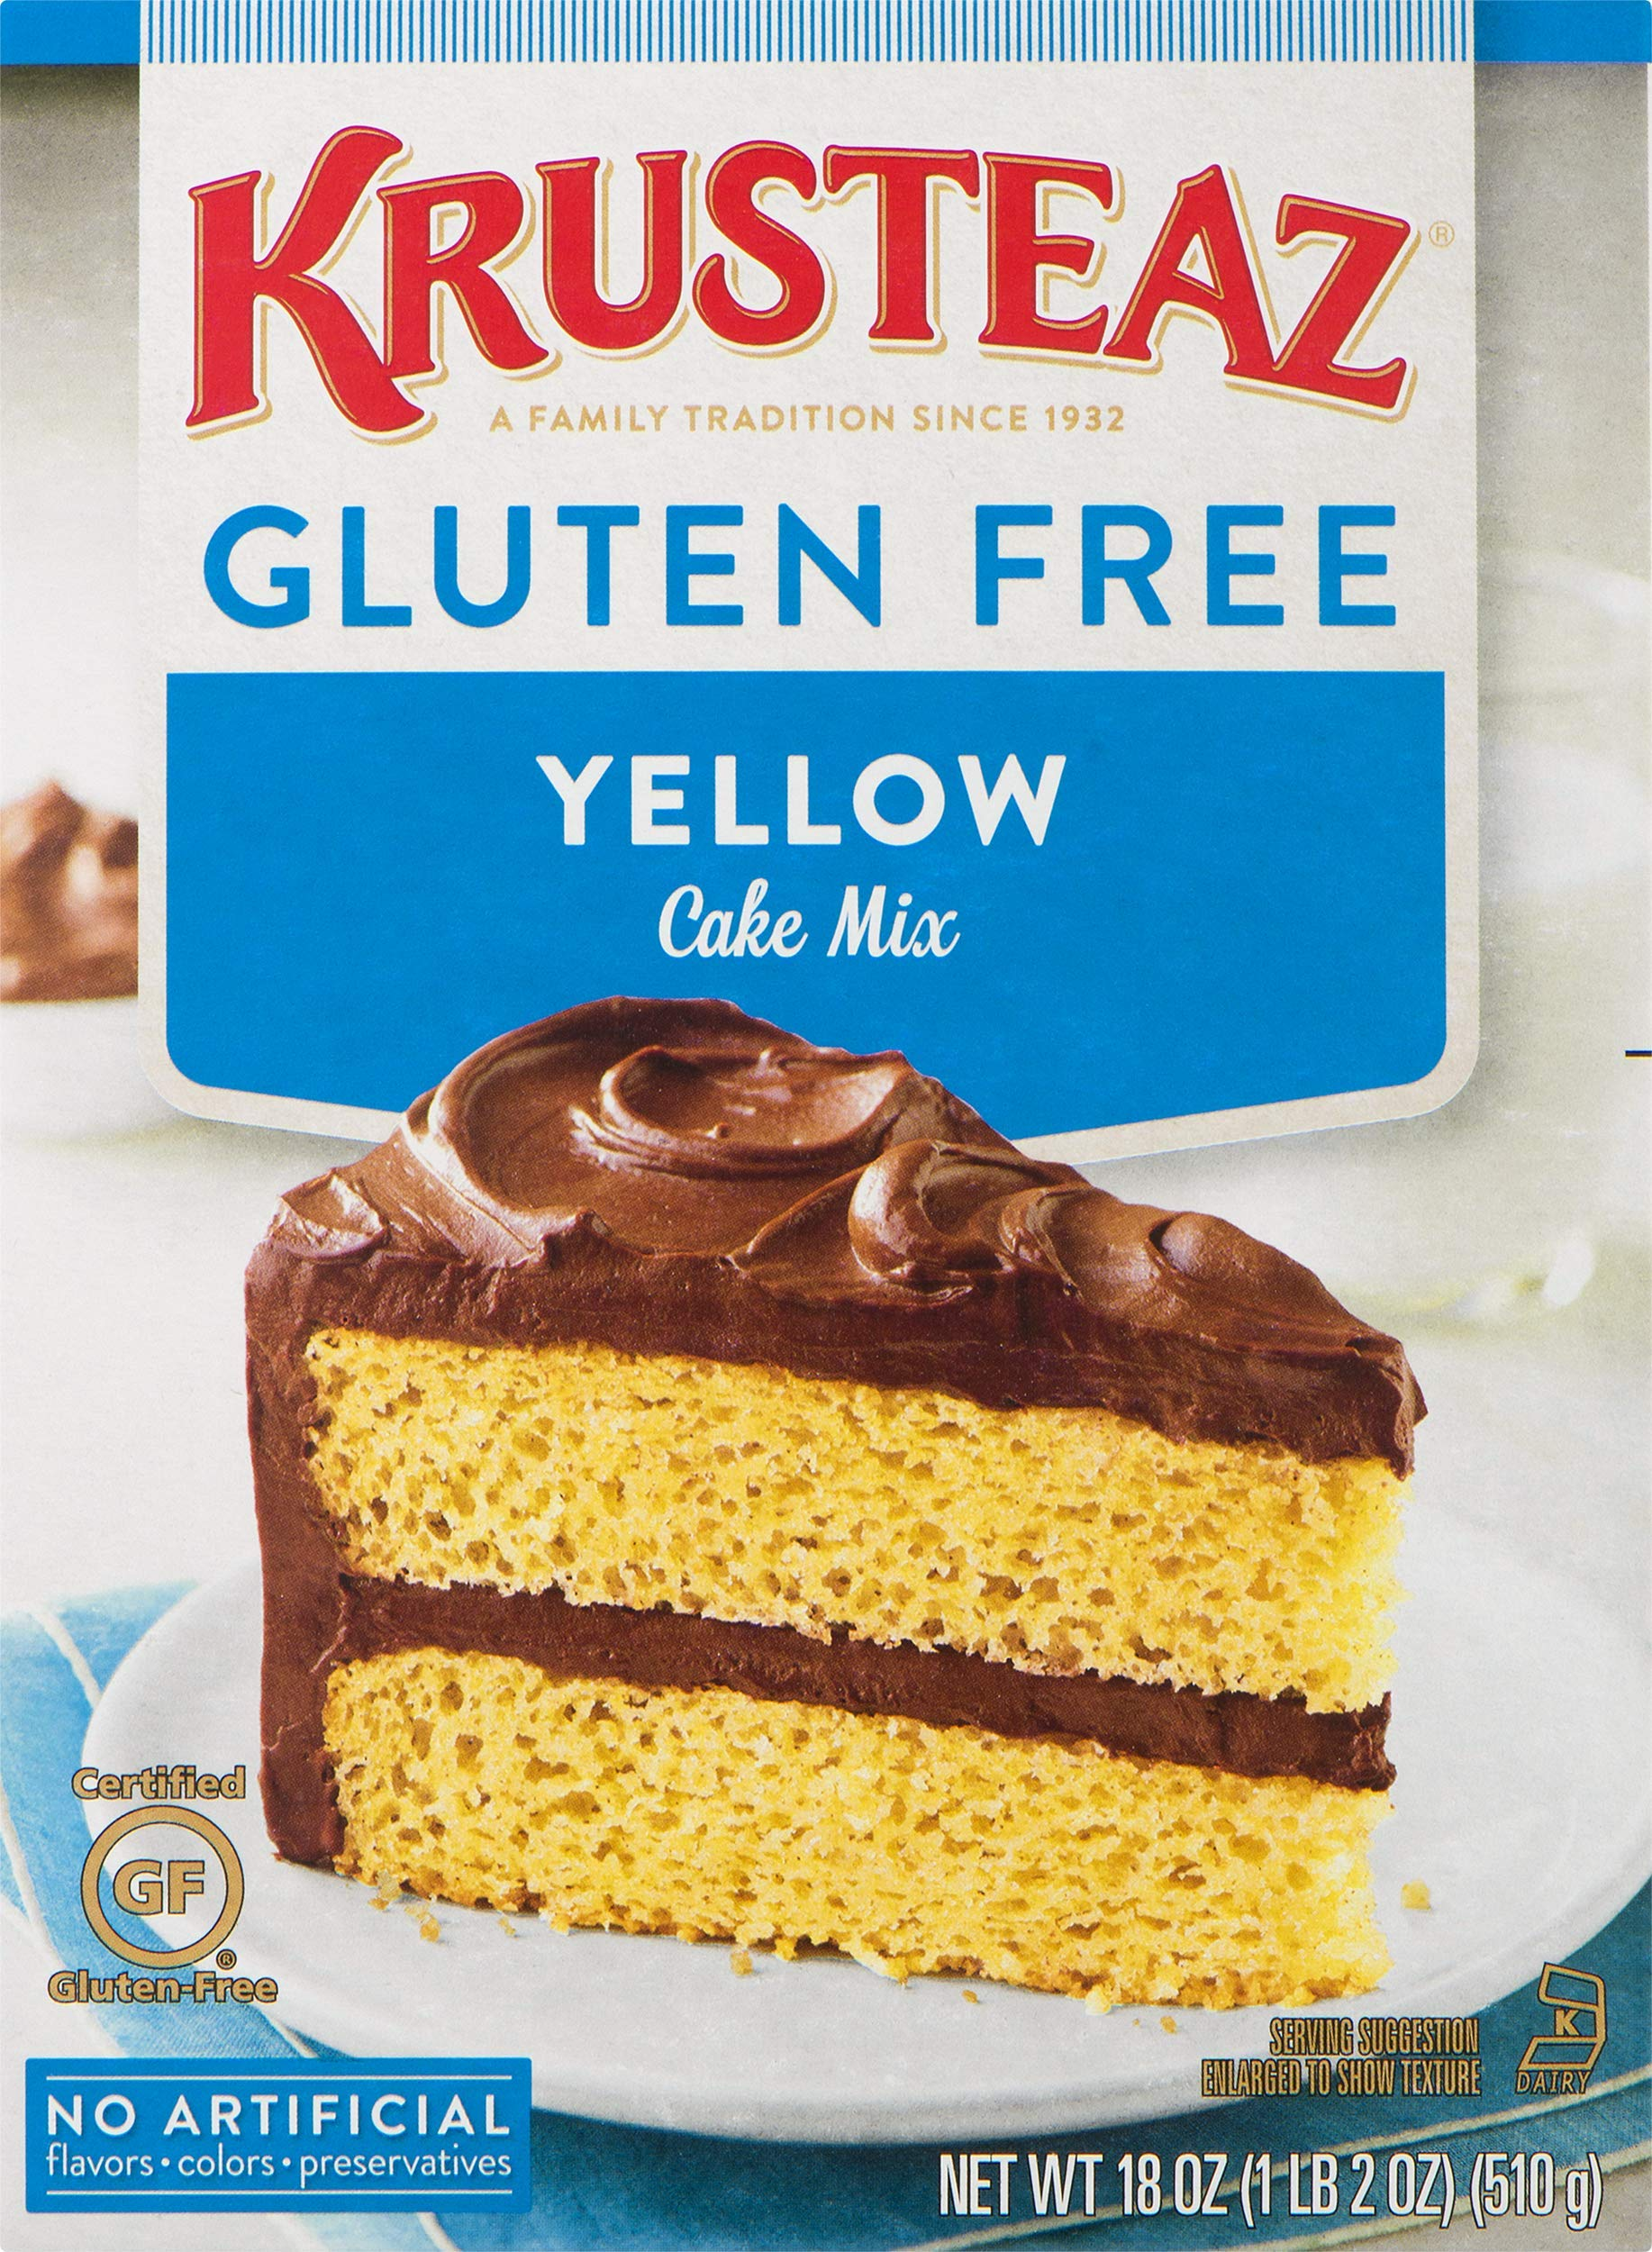 Krusteaz Gluten Free Yellow Cake Mix, 18 Ounce, Pack of 8 by Krusteaz